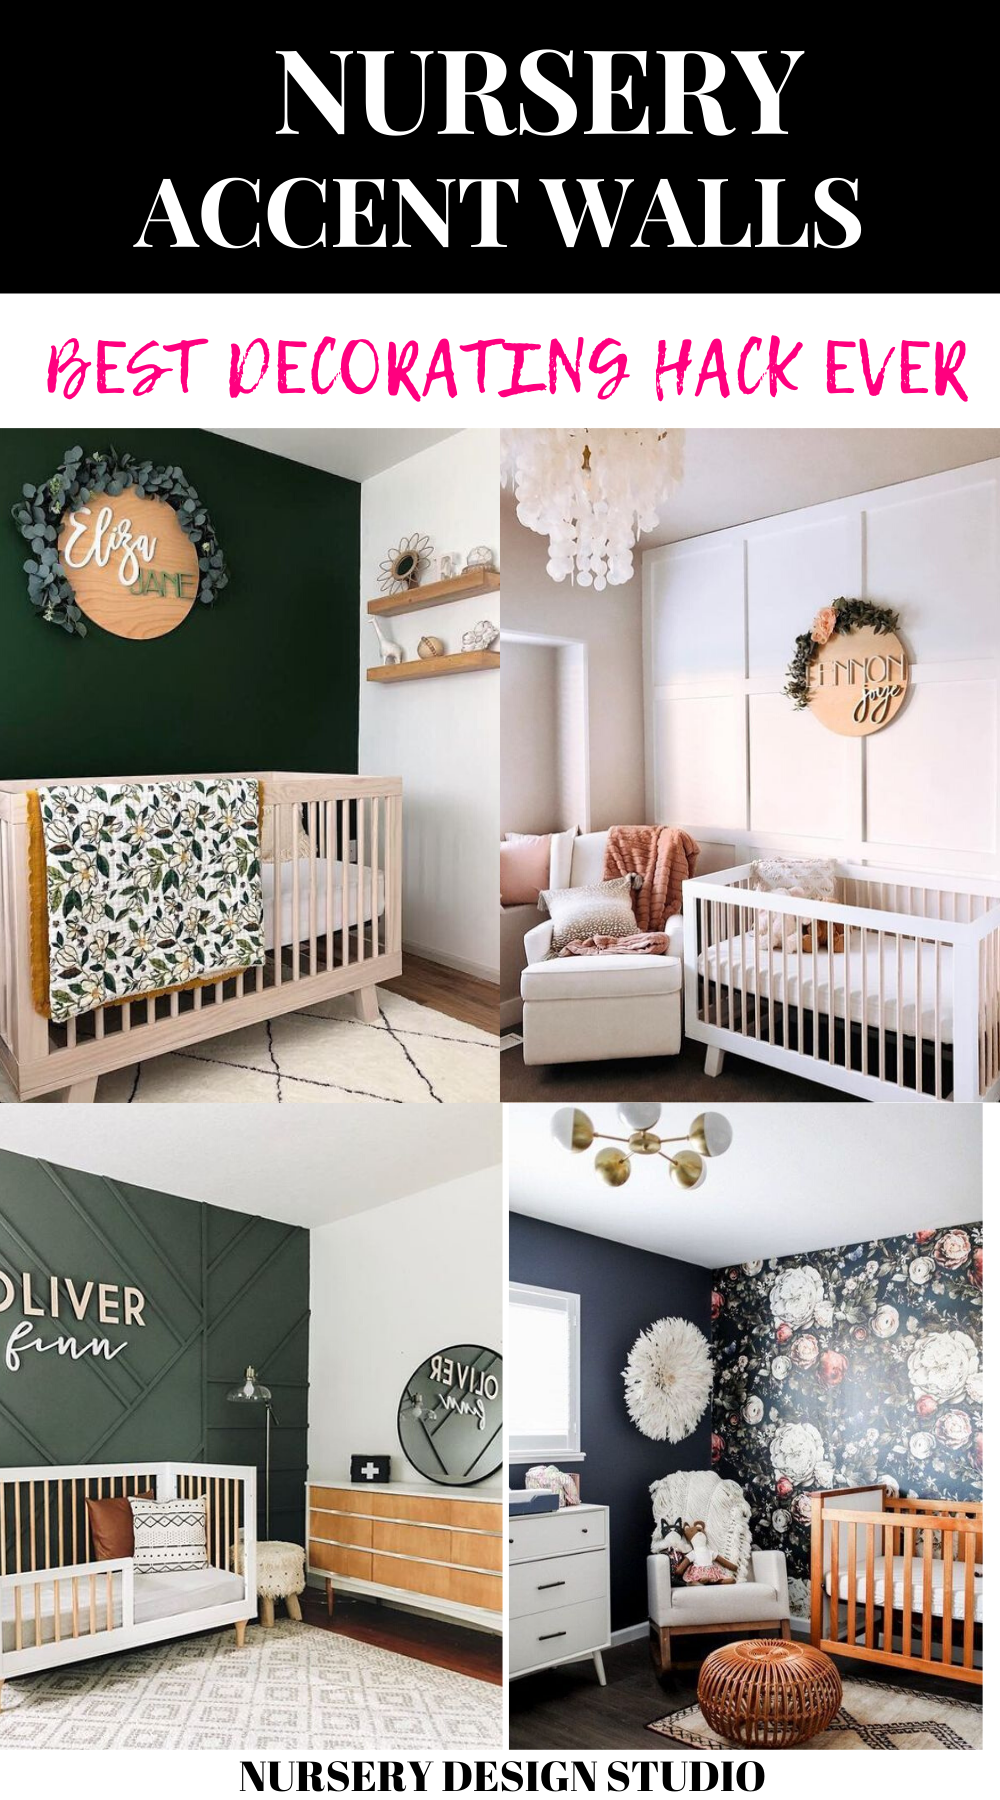 11 STUNNING NURSERY ACCENT WALL IDEAS THAT YOU'LL WANT TO ...